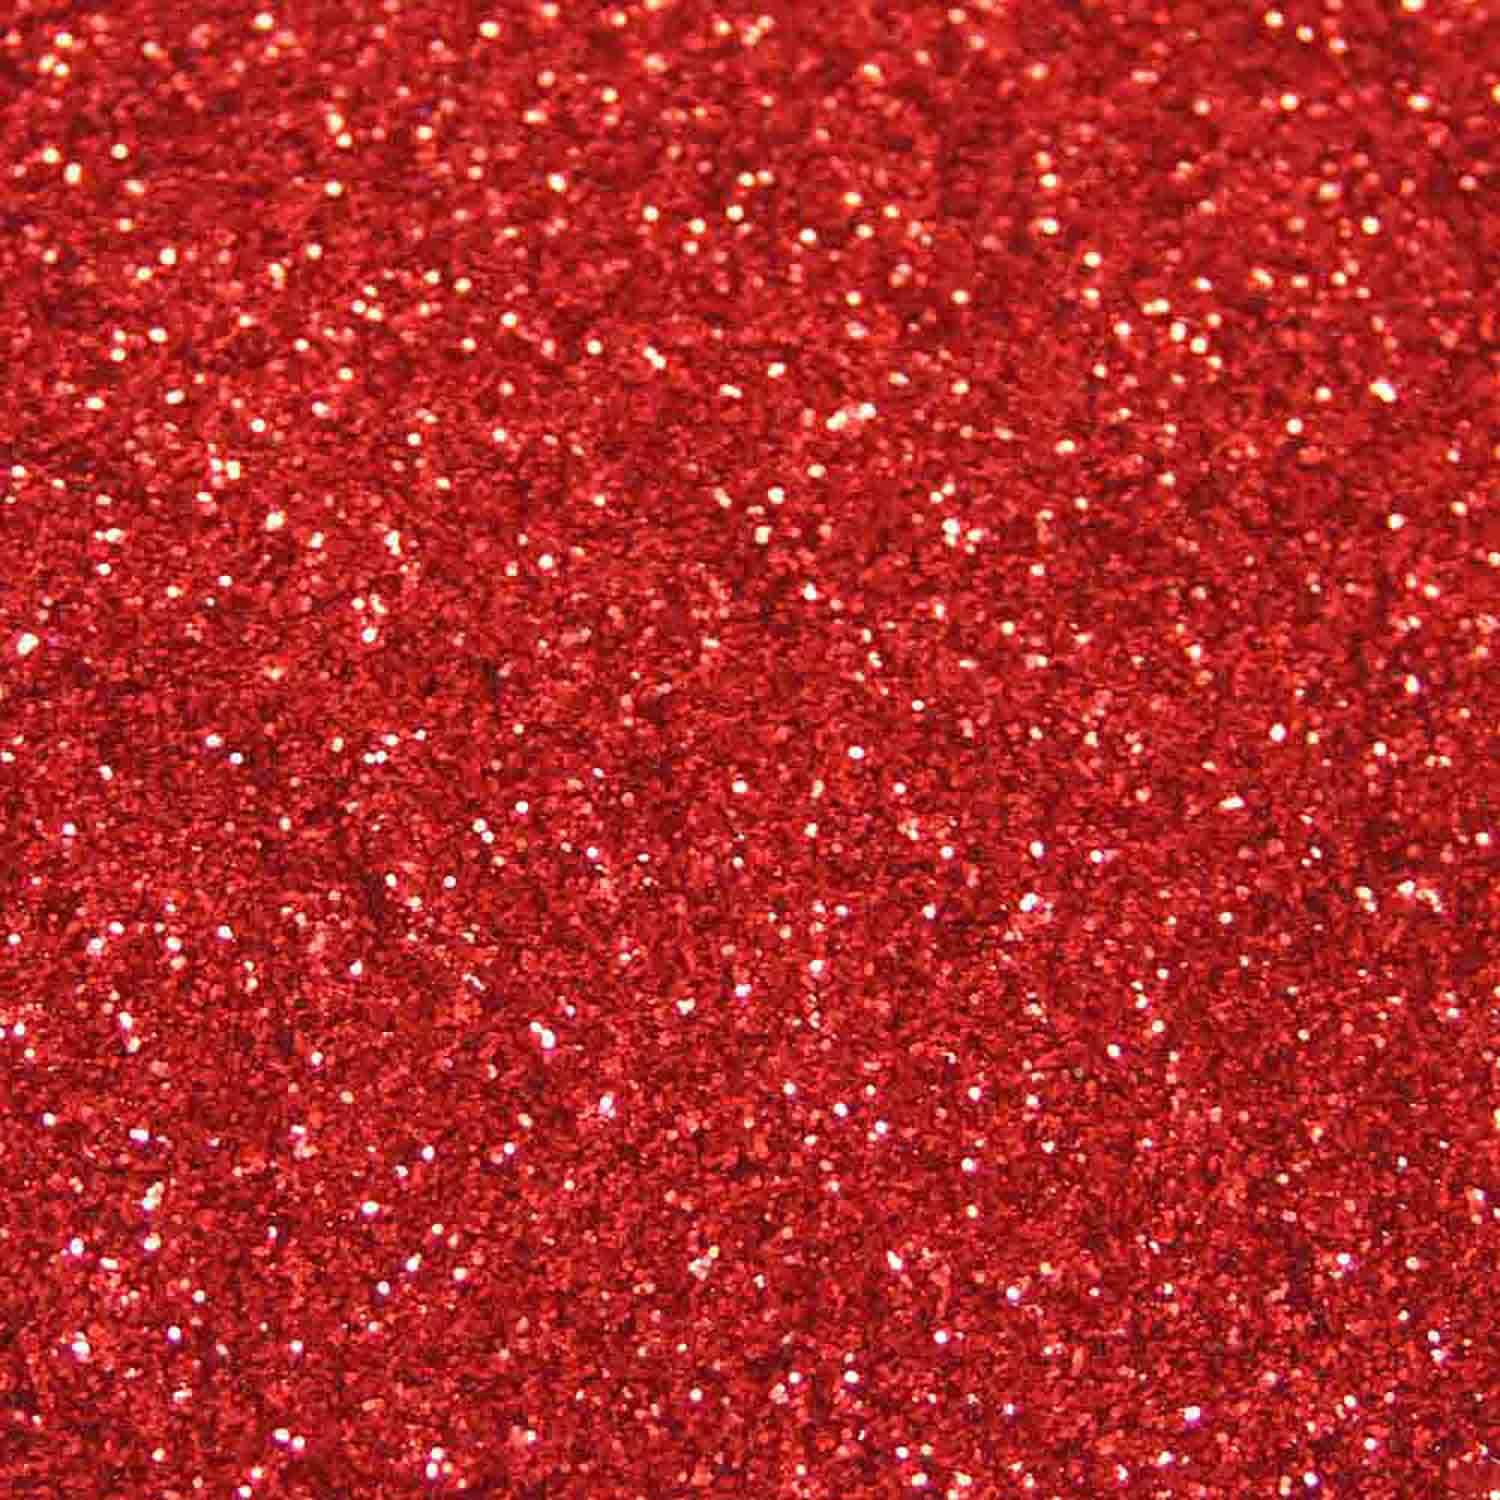 American Red Techno Glitter